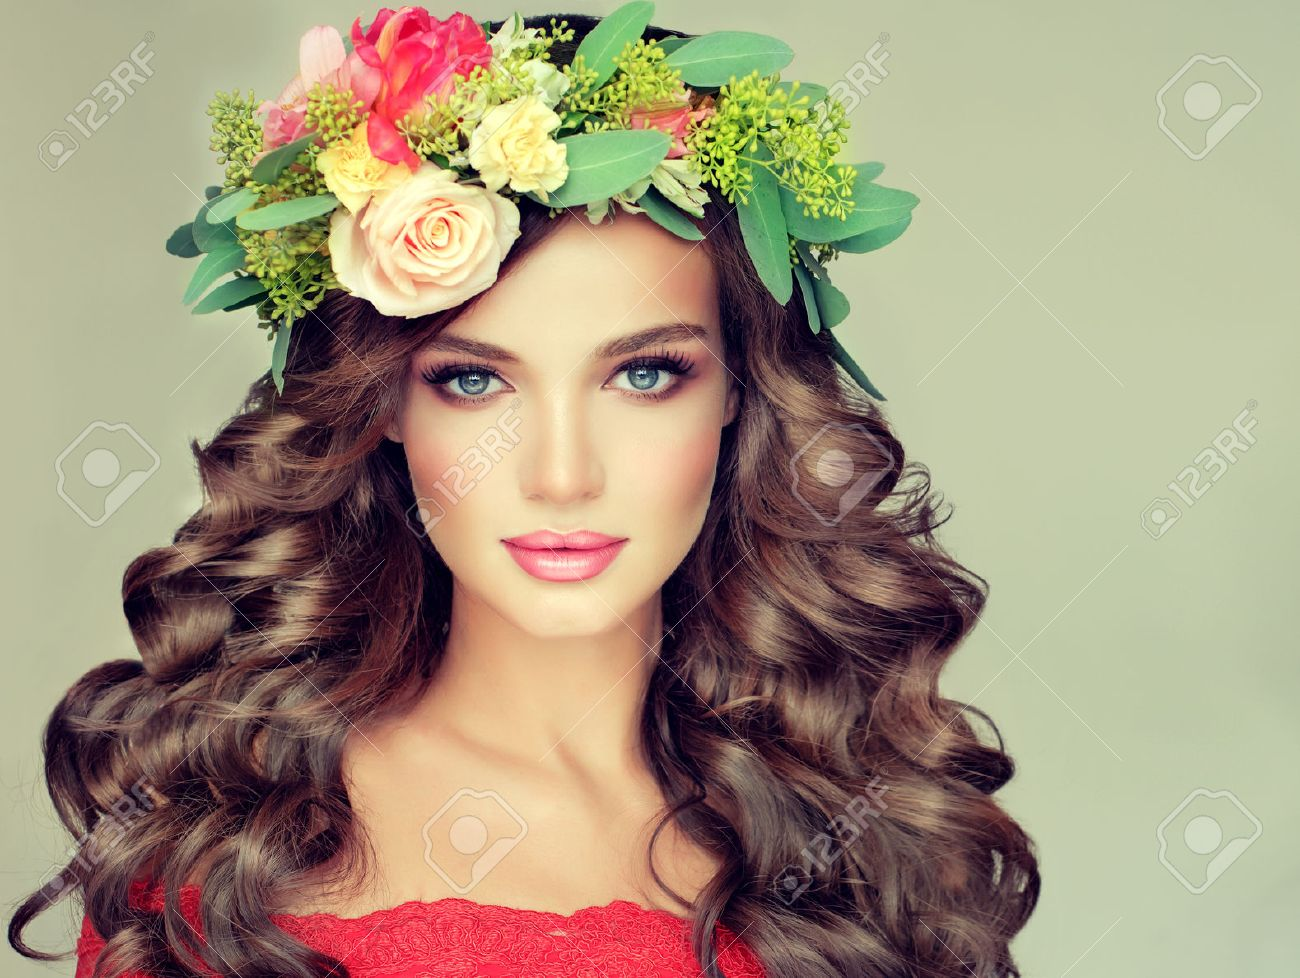 Beautiful woman model brunette with long curly hair floral wreath on the head . Spring girl. - 56304742